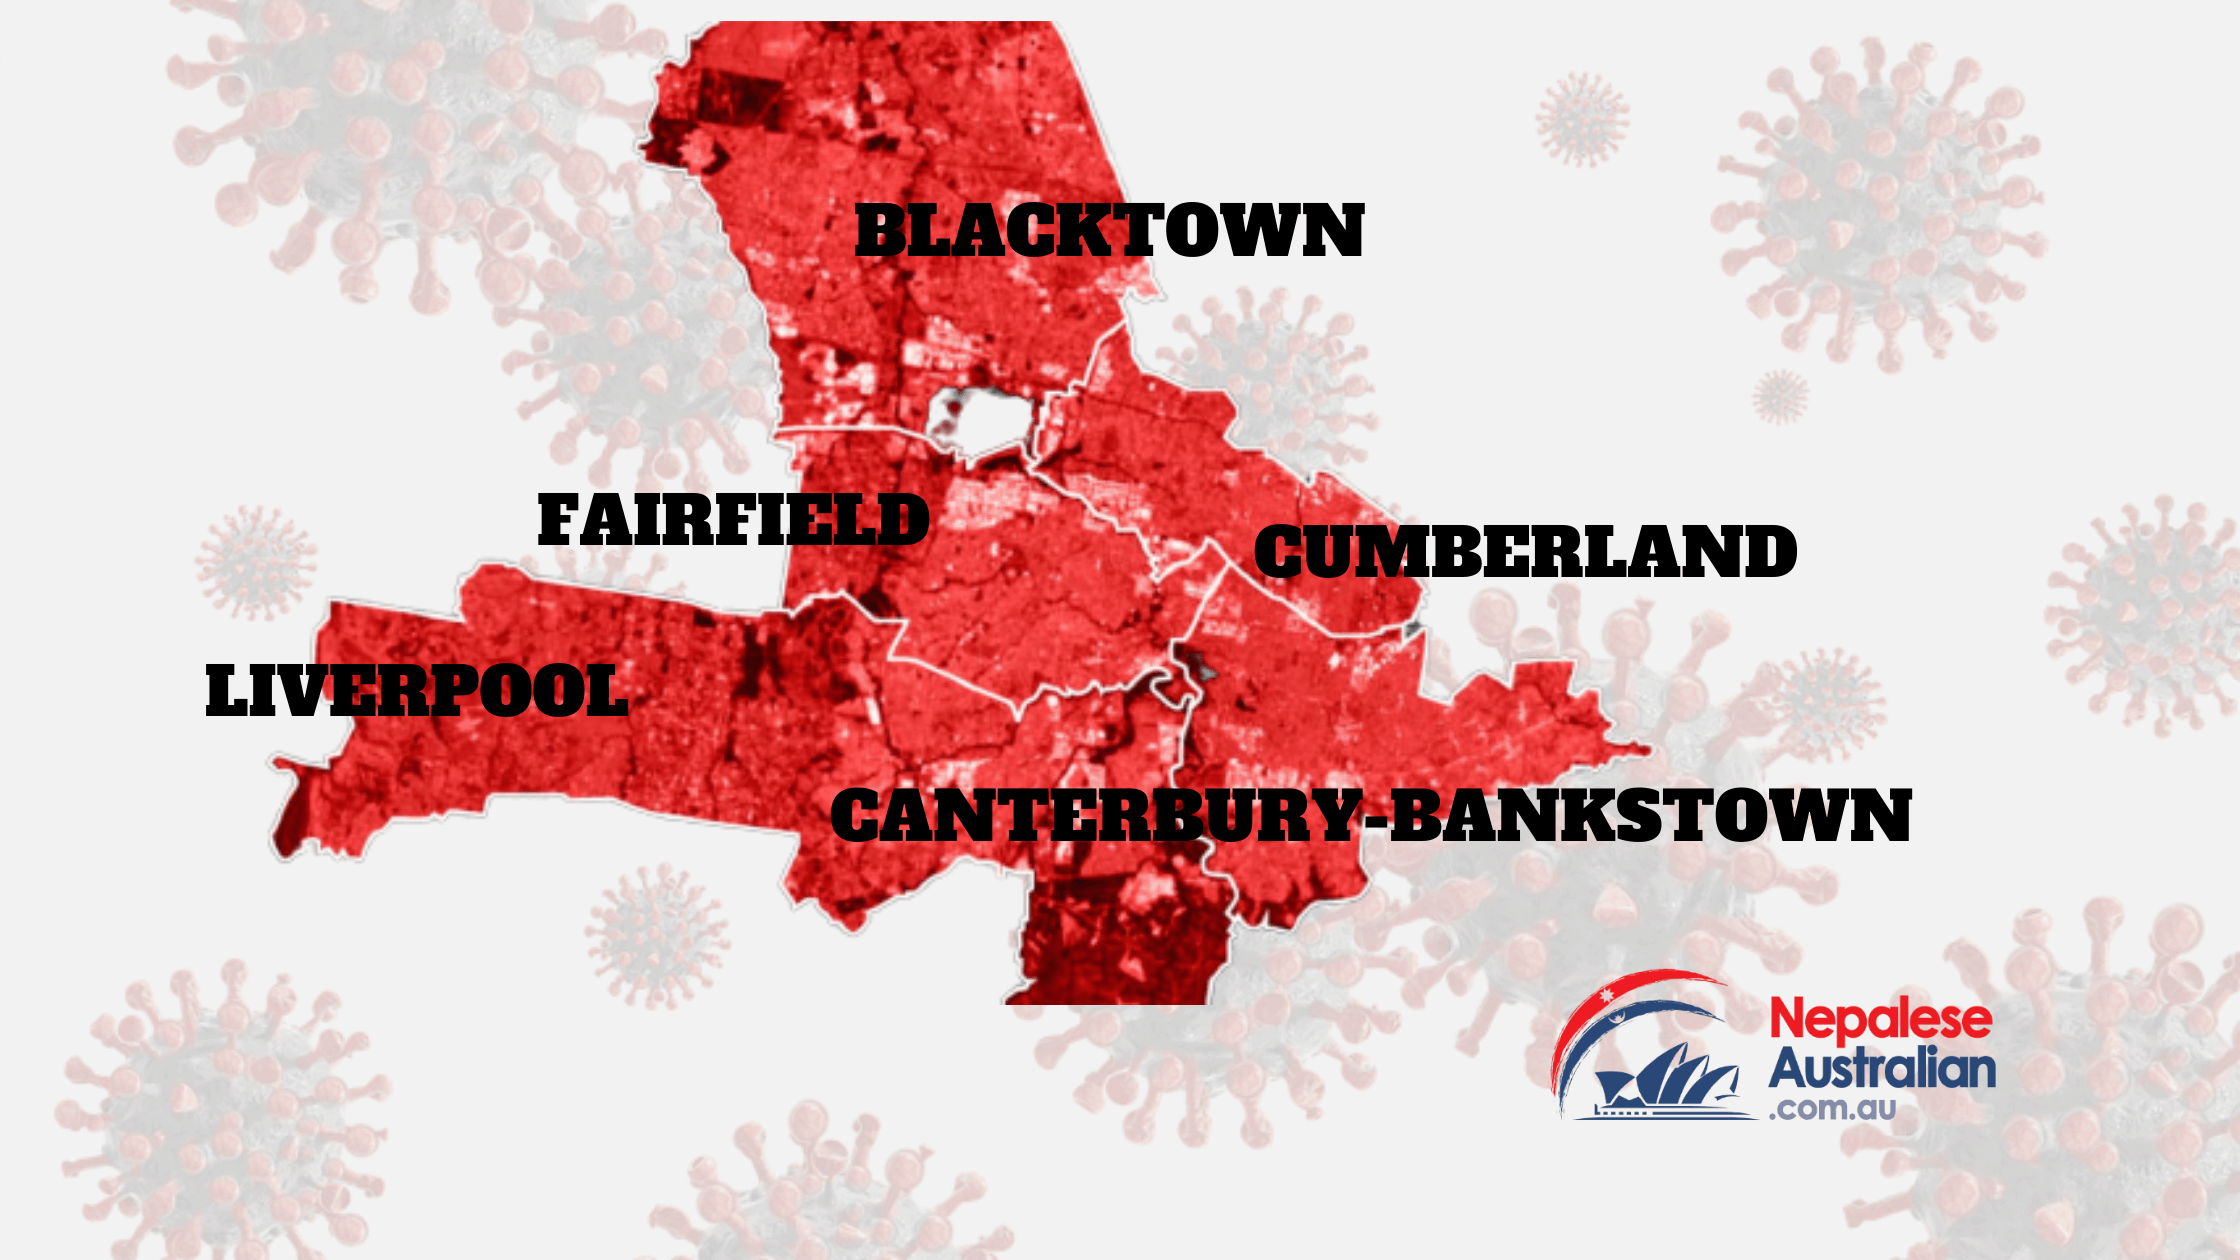 Residents of Fairfield, Canterbury-Bankstown, Liverpool, Cumberland and Blacktown are now not allowed to leave their areas unless they are health workers or on a list of authorised workers.